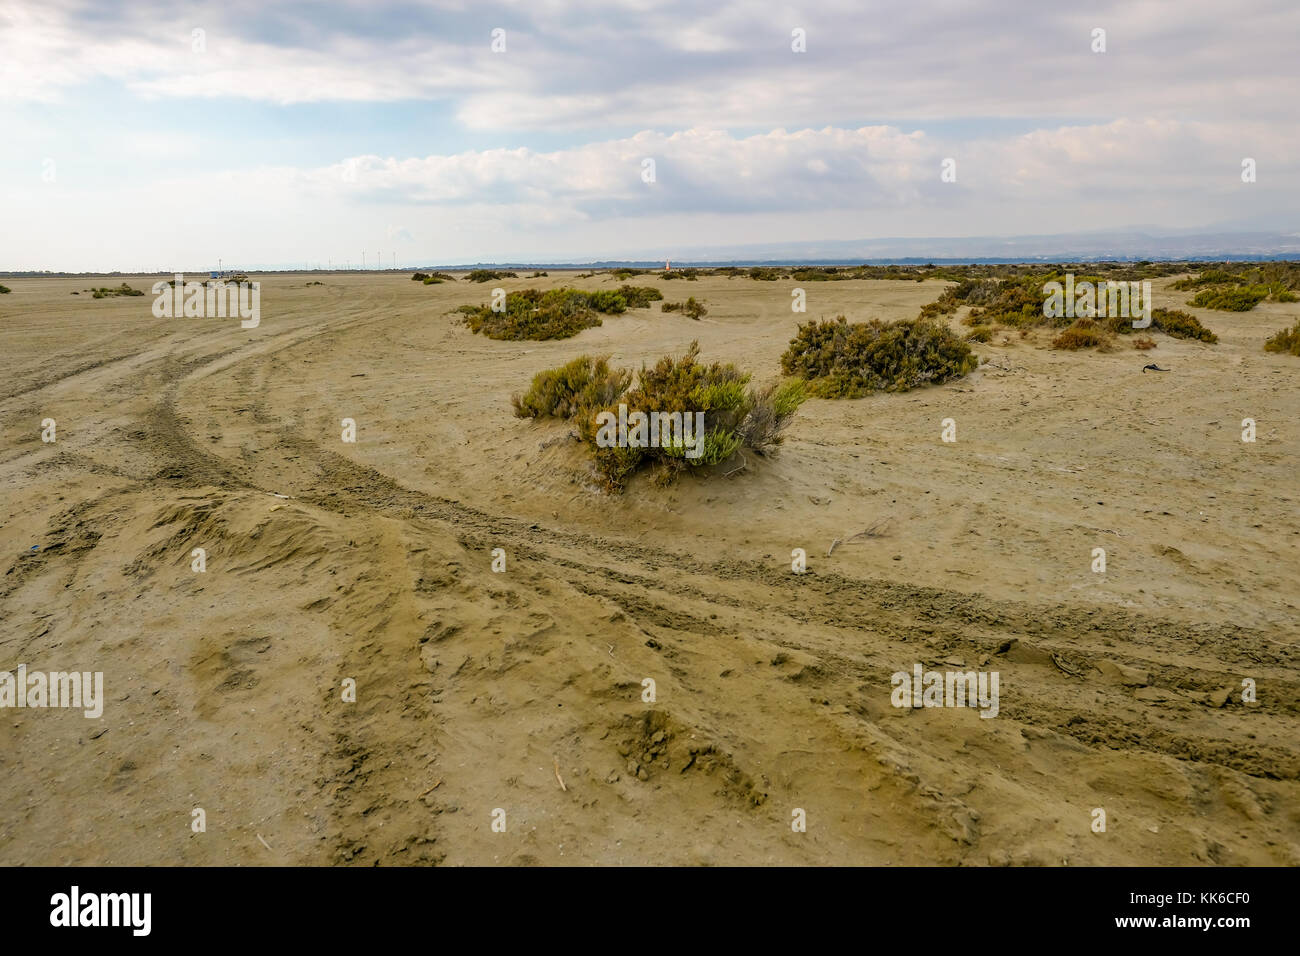 Track in the desert with tyre marks and scrubby growth.  Natural and vast area. - Stock Image